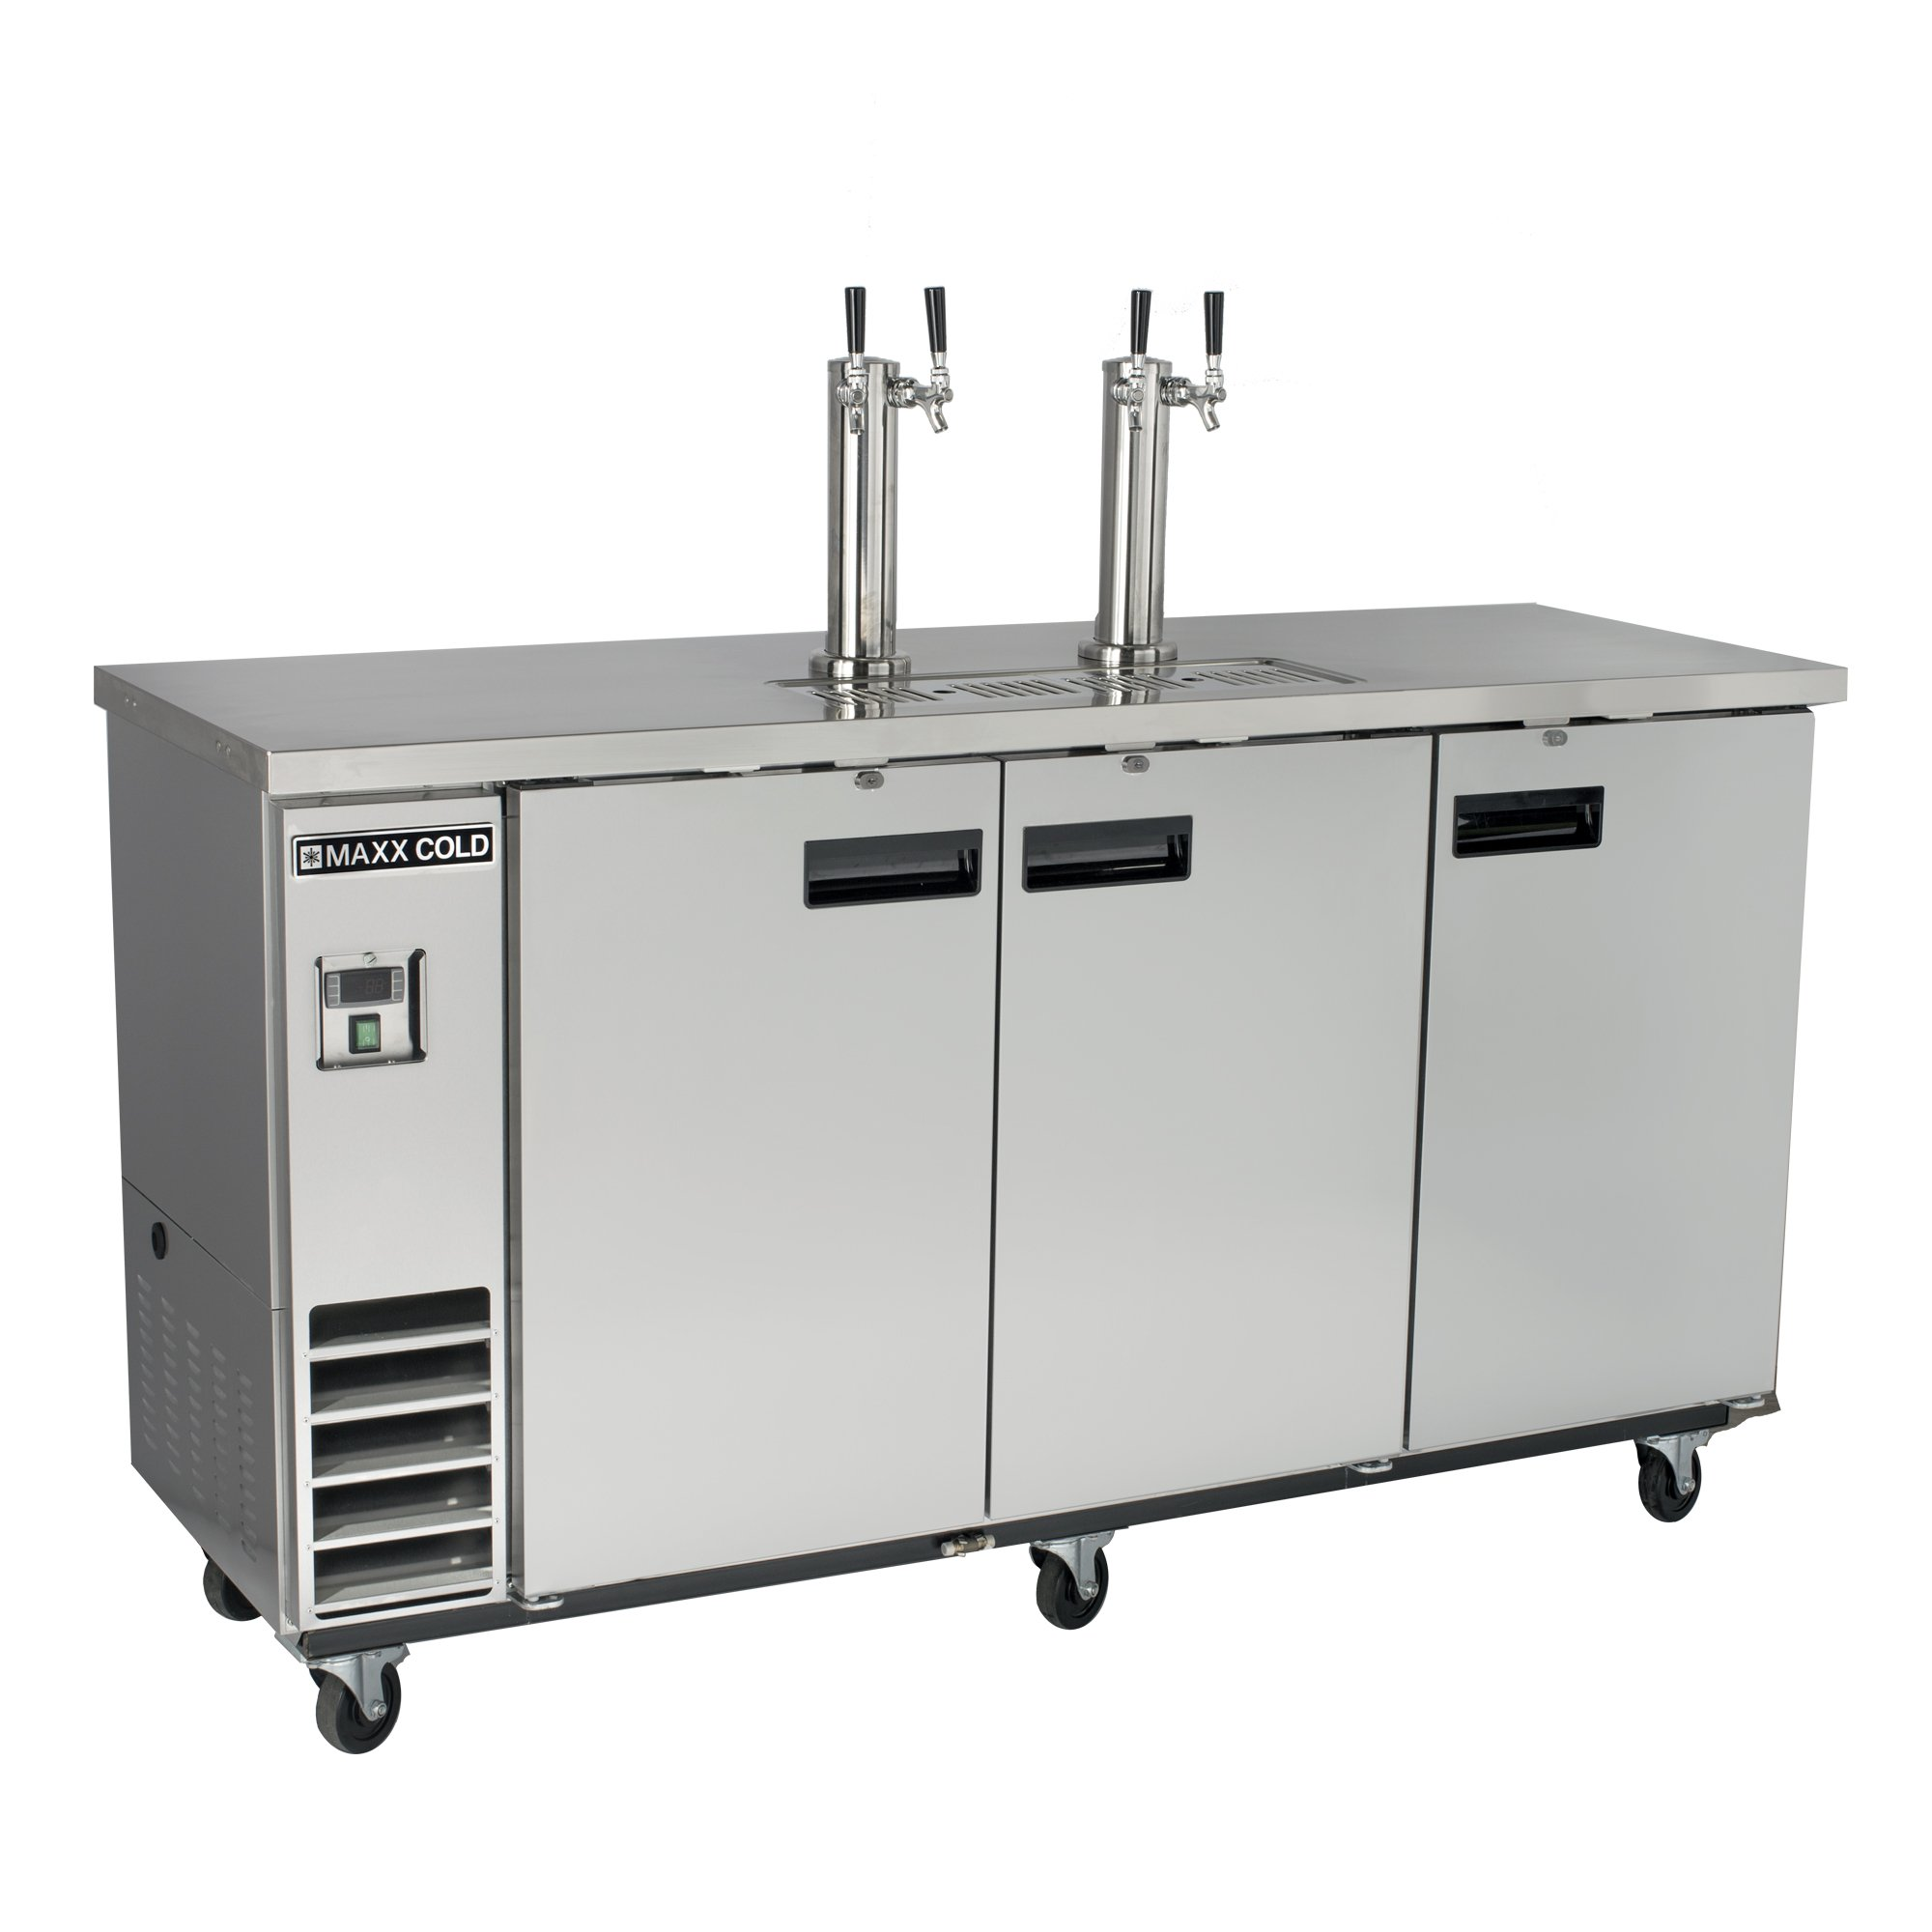 Maxx Cold MXBD72-2S Commercial Stainless Steel NSF Bar Direct Draw Kegerator Beer Dispenser Cooler with 2 Towers Taps Holds 2 Half 1/2 Size Keg, 73.1 Inch Wide 17.3 Cubic Feet , Silver